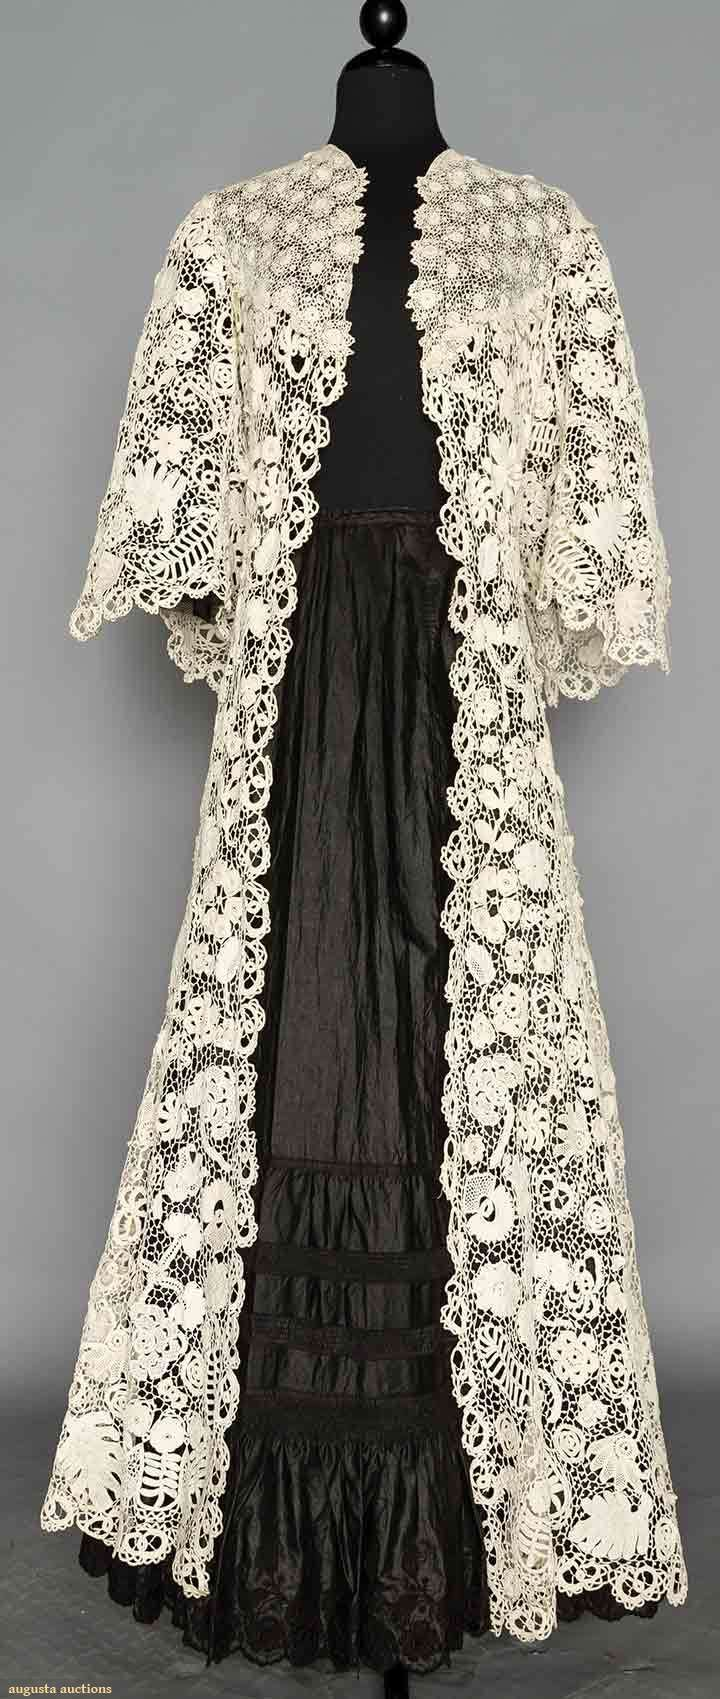 HAND MADE IRISH LACE COAT, 1908-1910 | Augusta Auctions